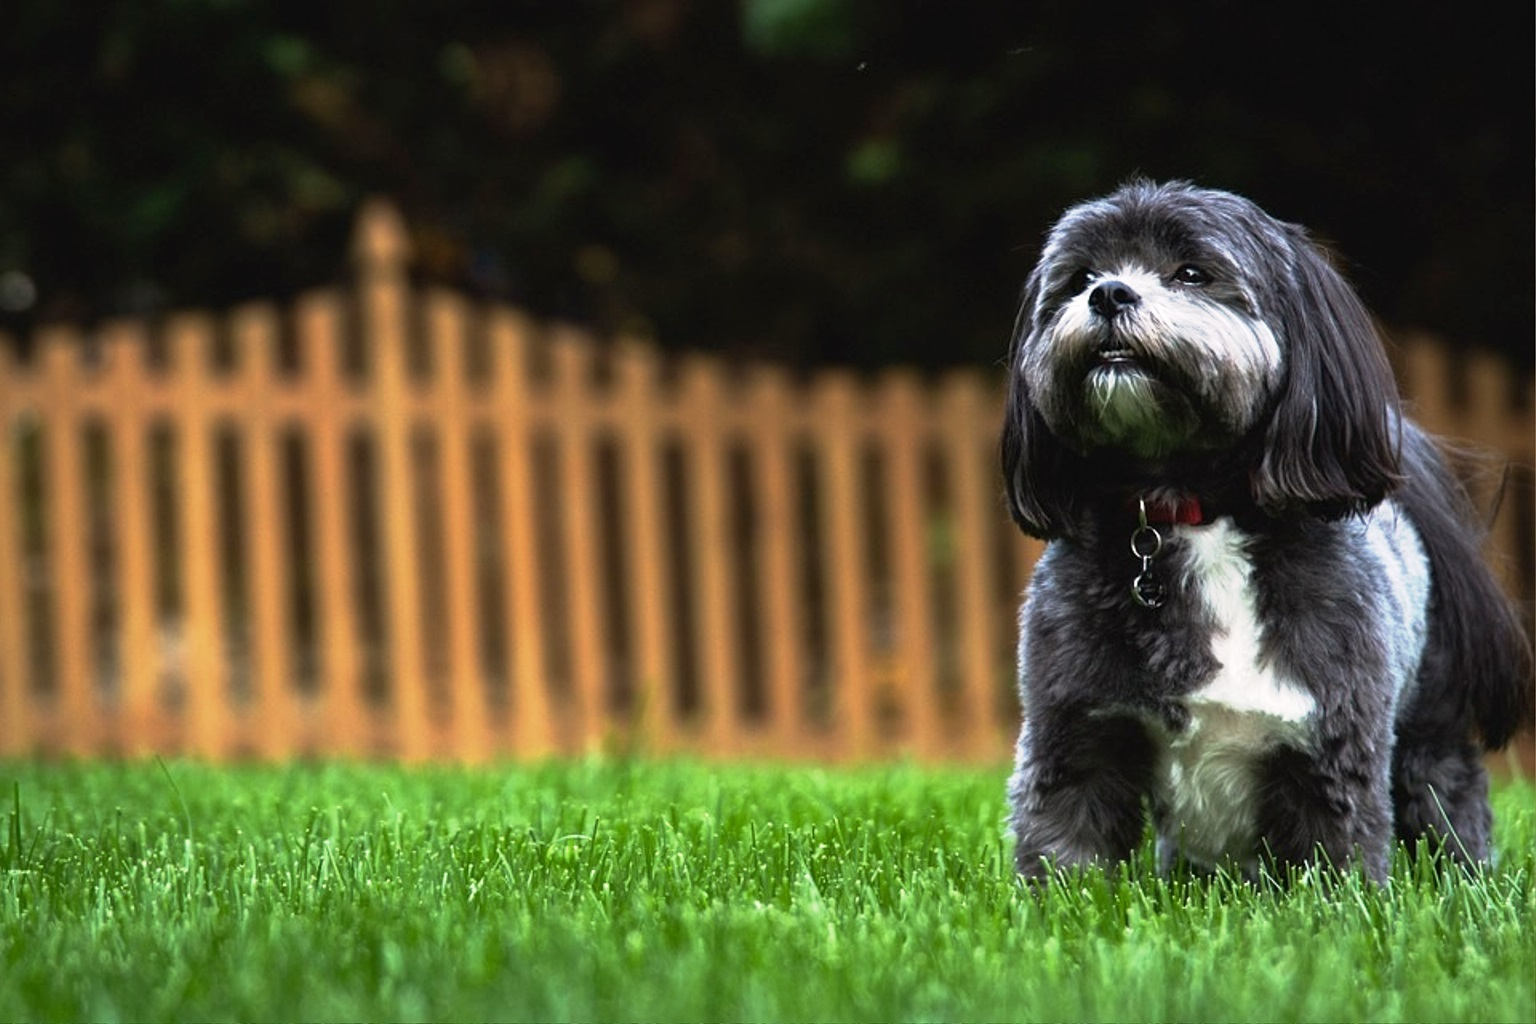 Shih-Tzu dog breed